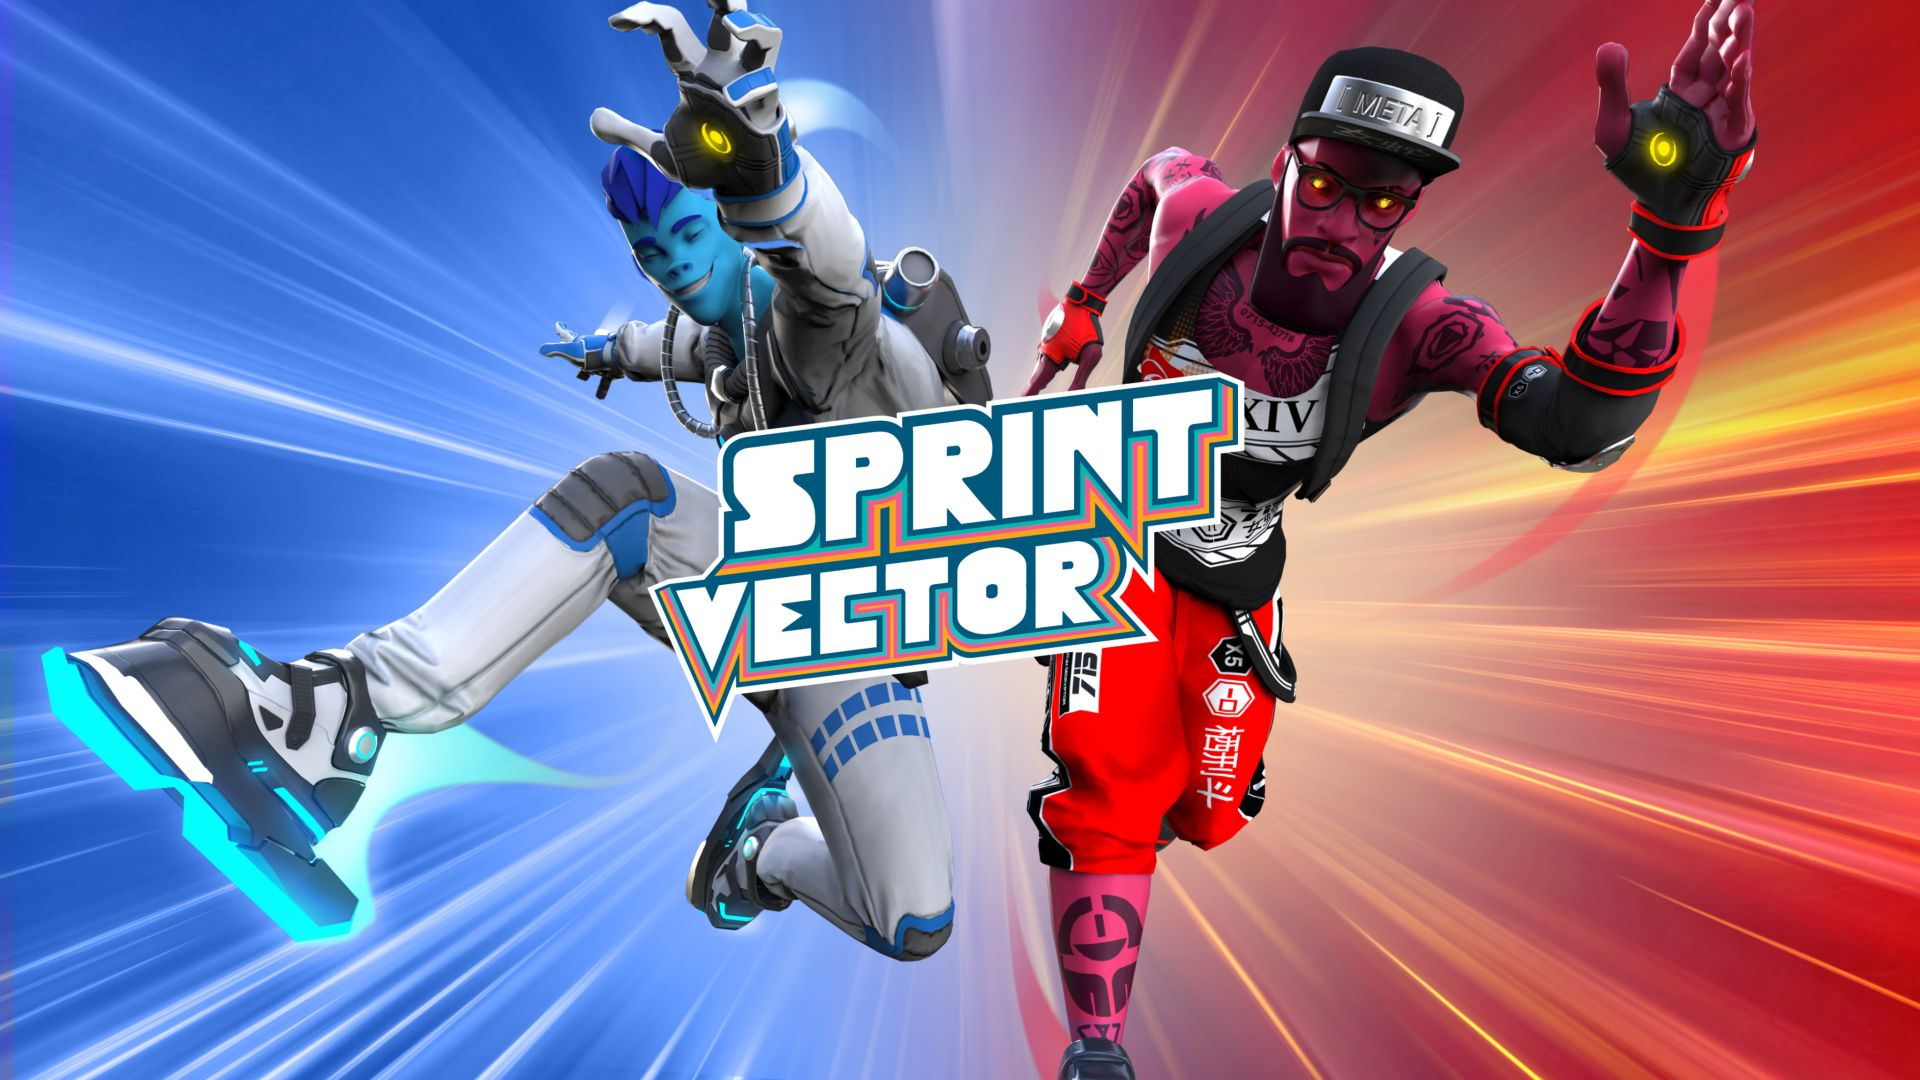 Sprint Vector - Best VR of E3 2017 - WINNER